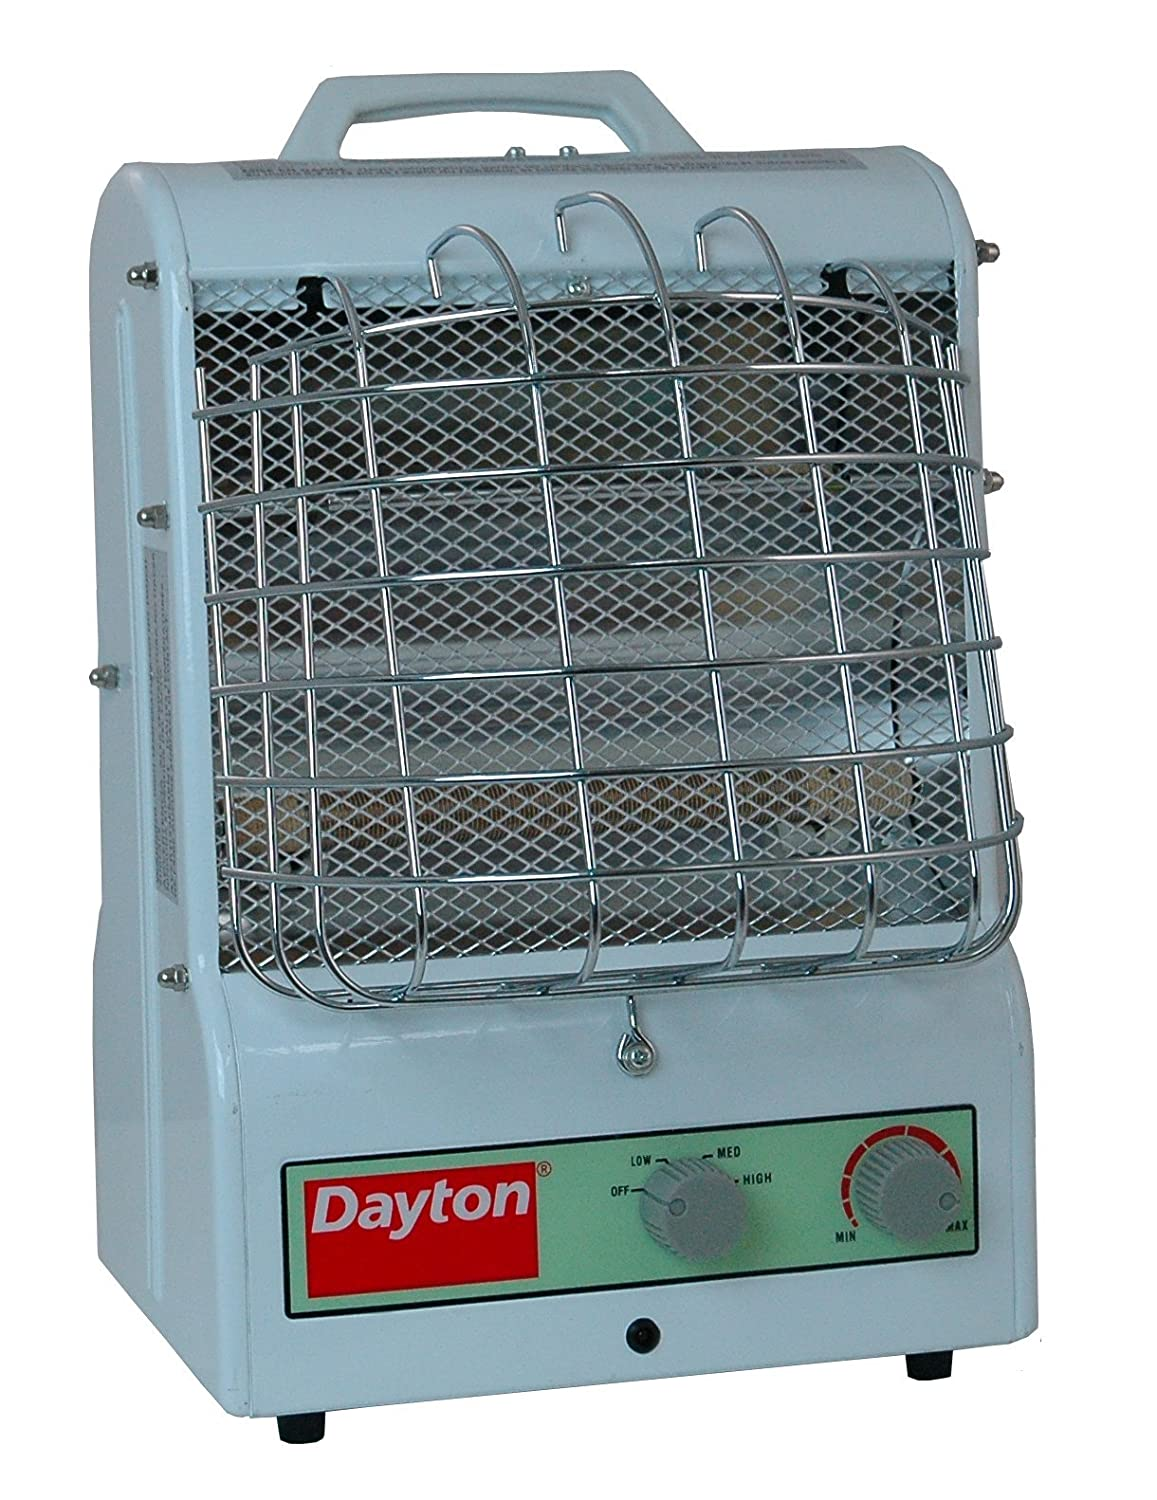 Dayton Electric Space Heater Wiring Diagram Diagrams Schematics 3e230b Amazon Com 1500 900 600w Fan Forced On Parts